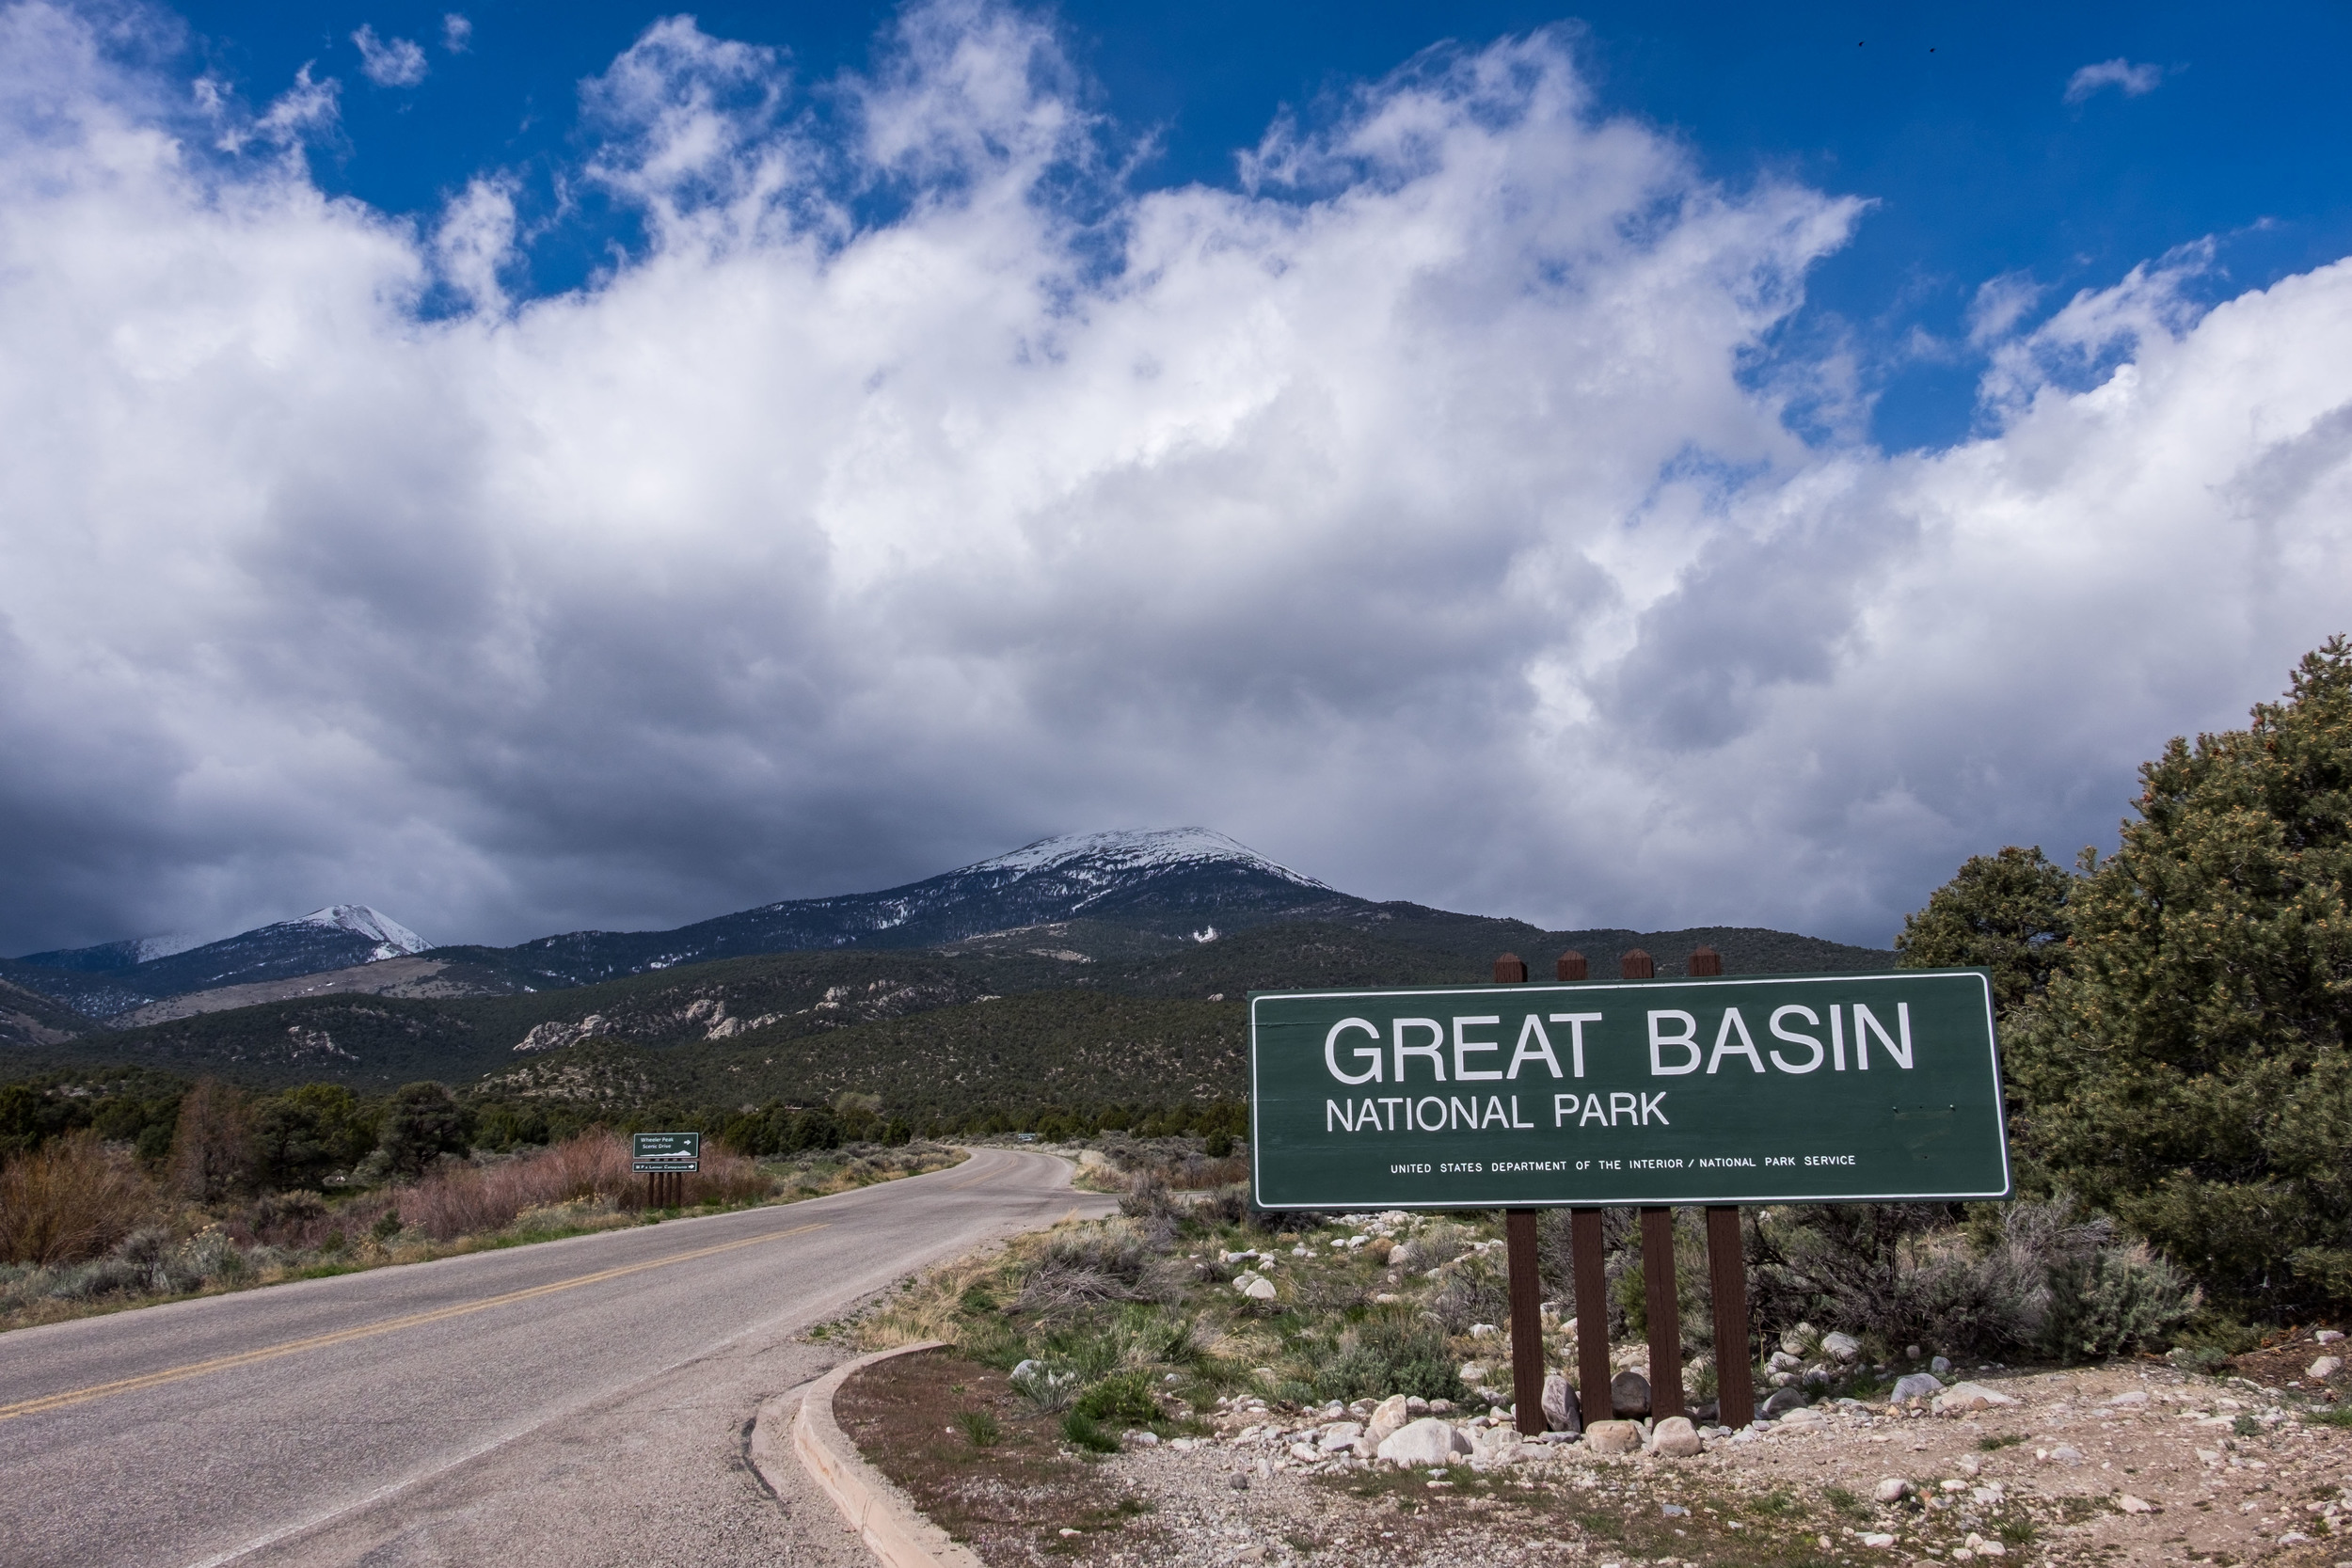 The entrance sign to Great Basin National Park in Nevada.